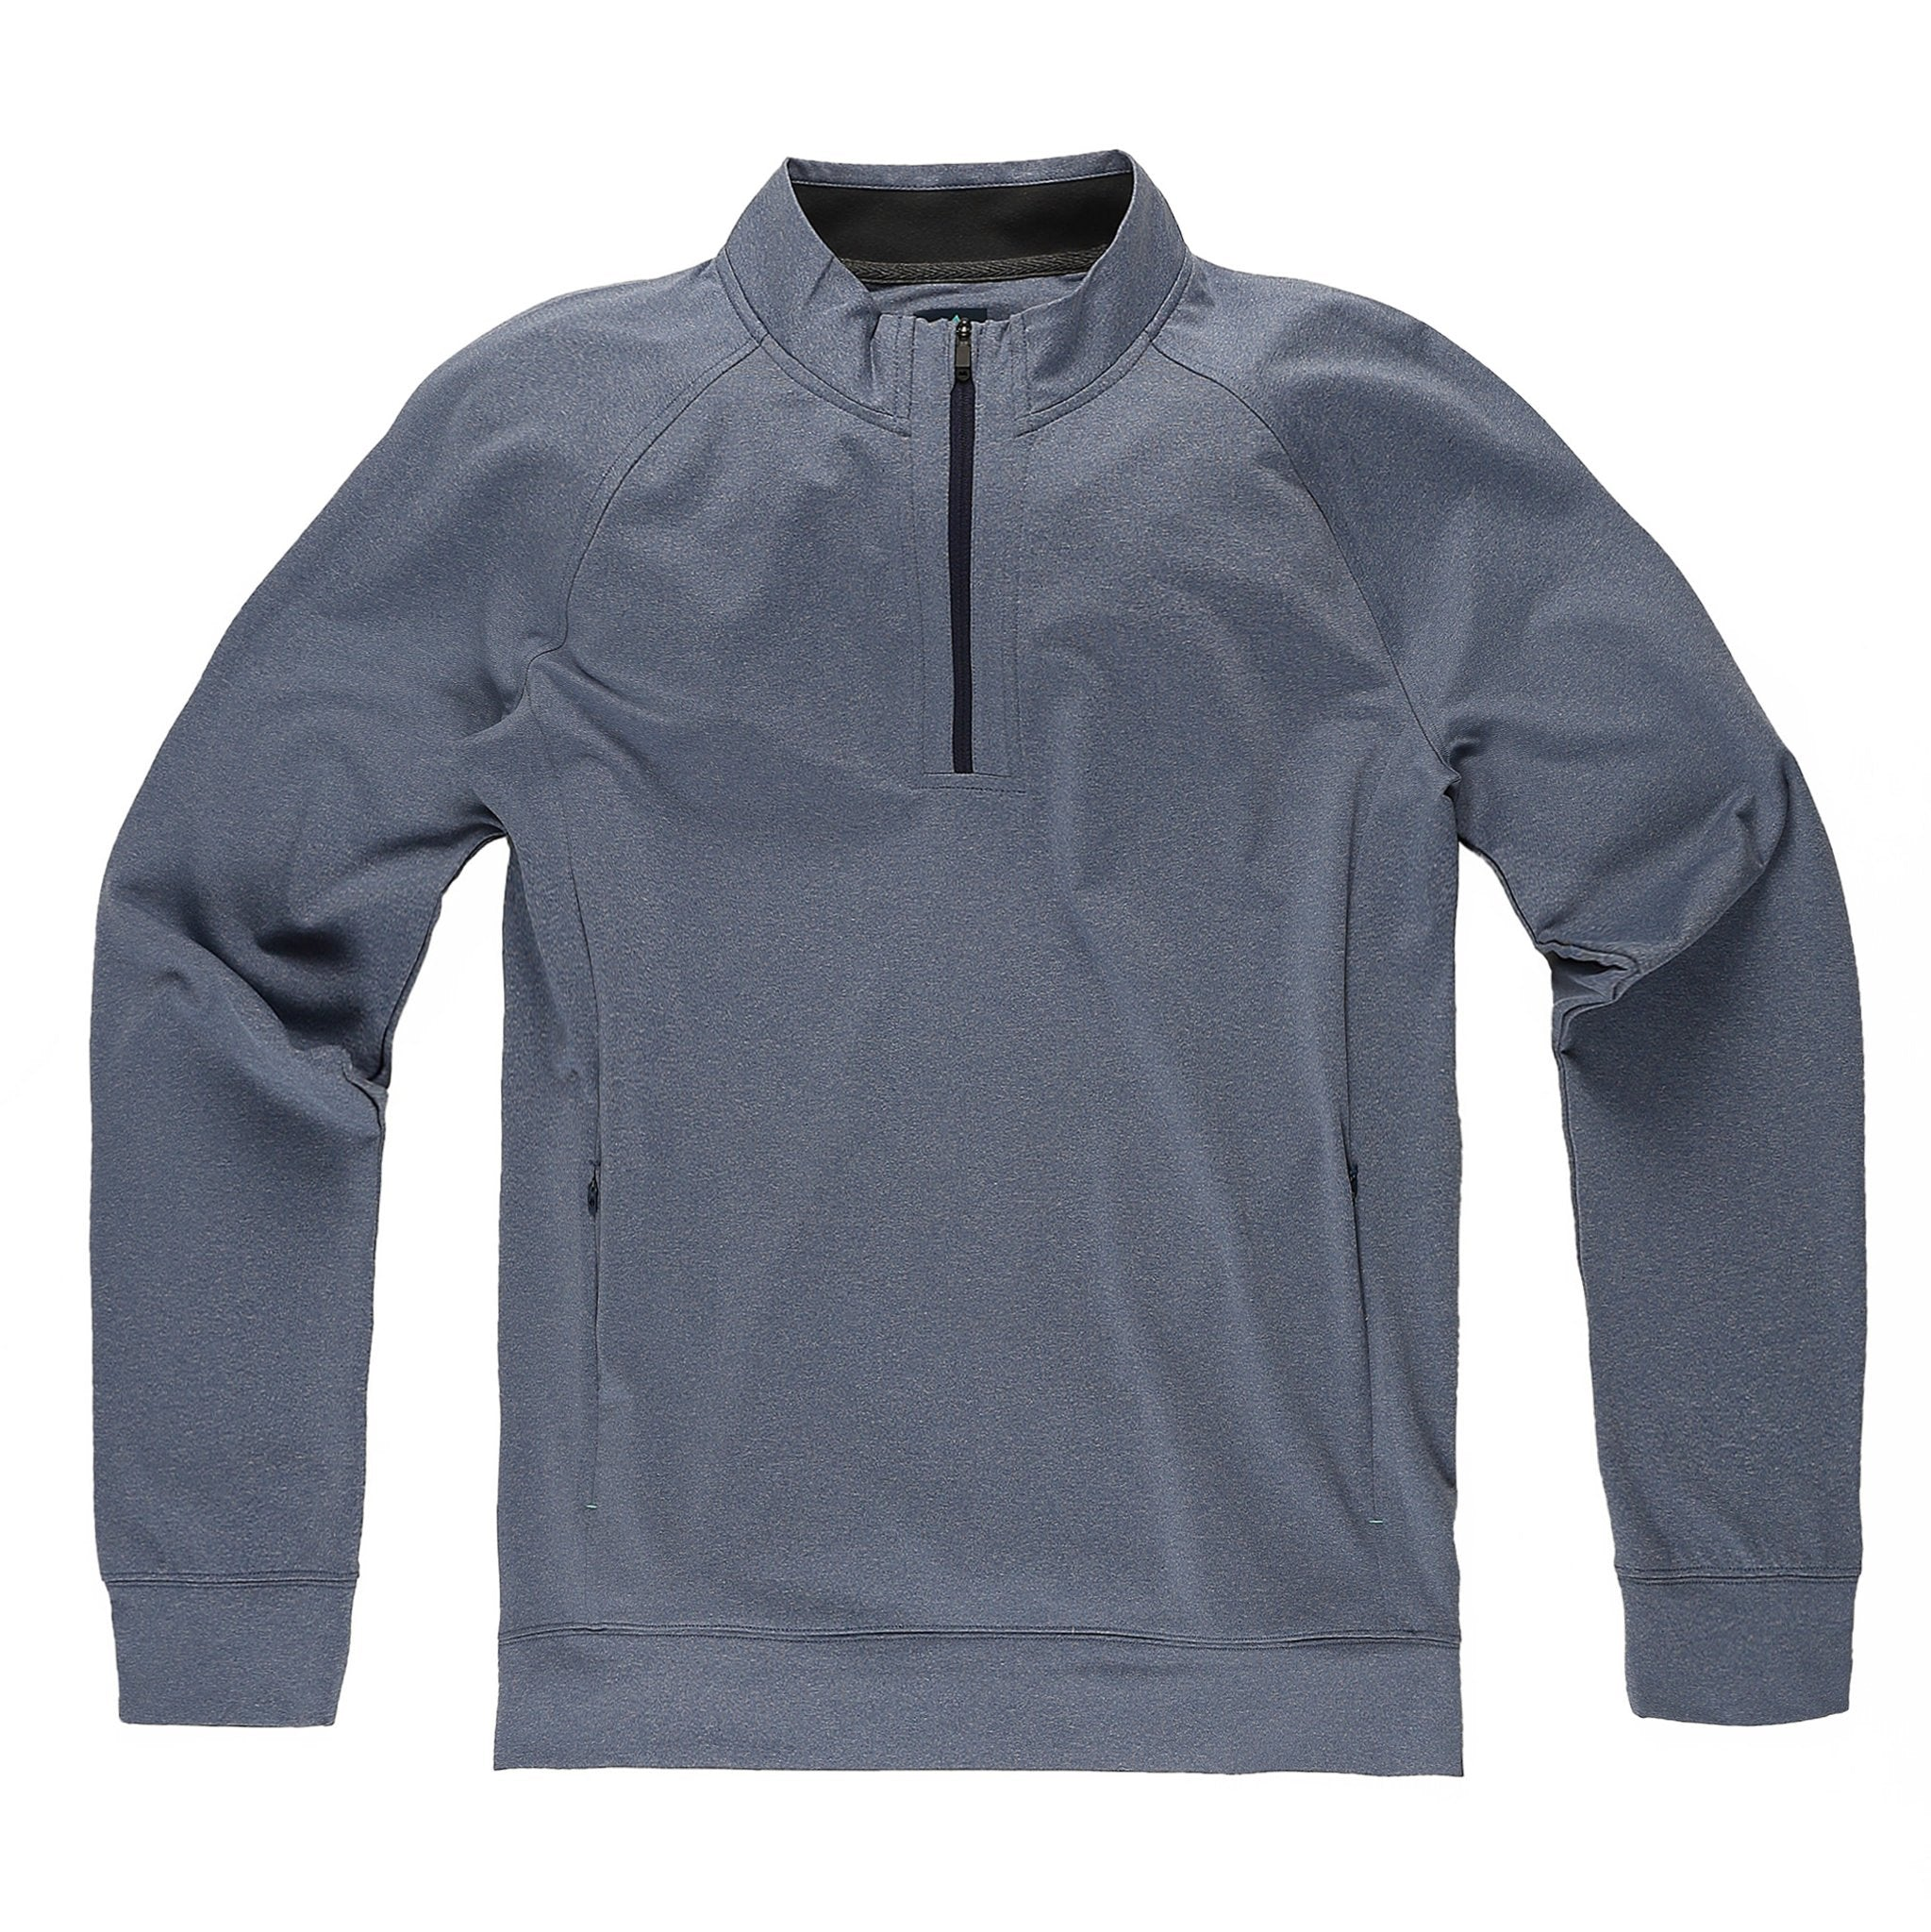 Momentum Quarter-Zip in Heather River